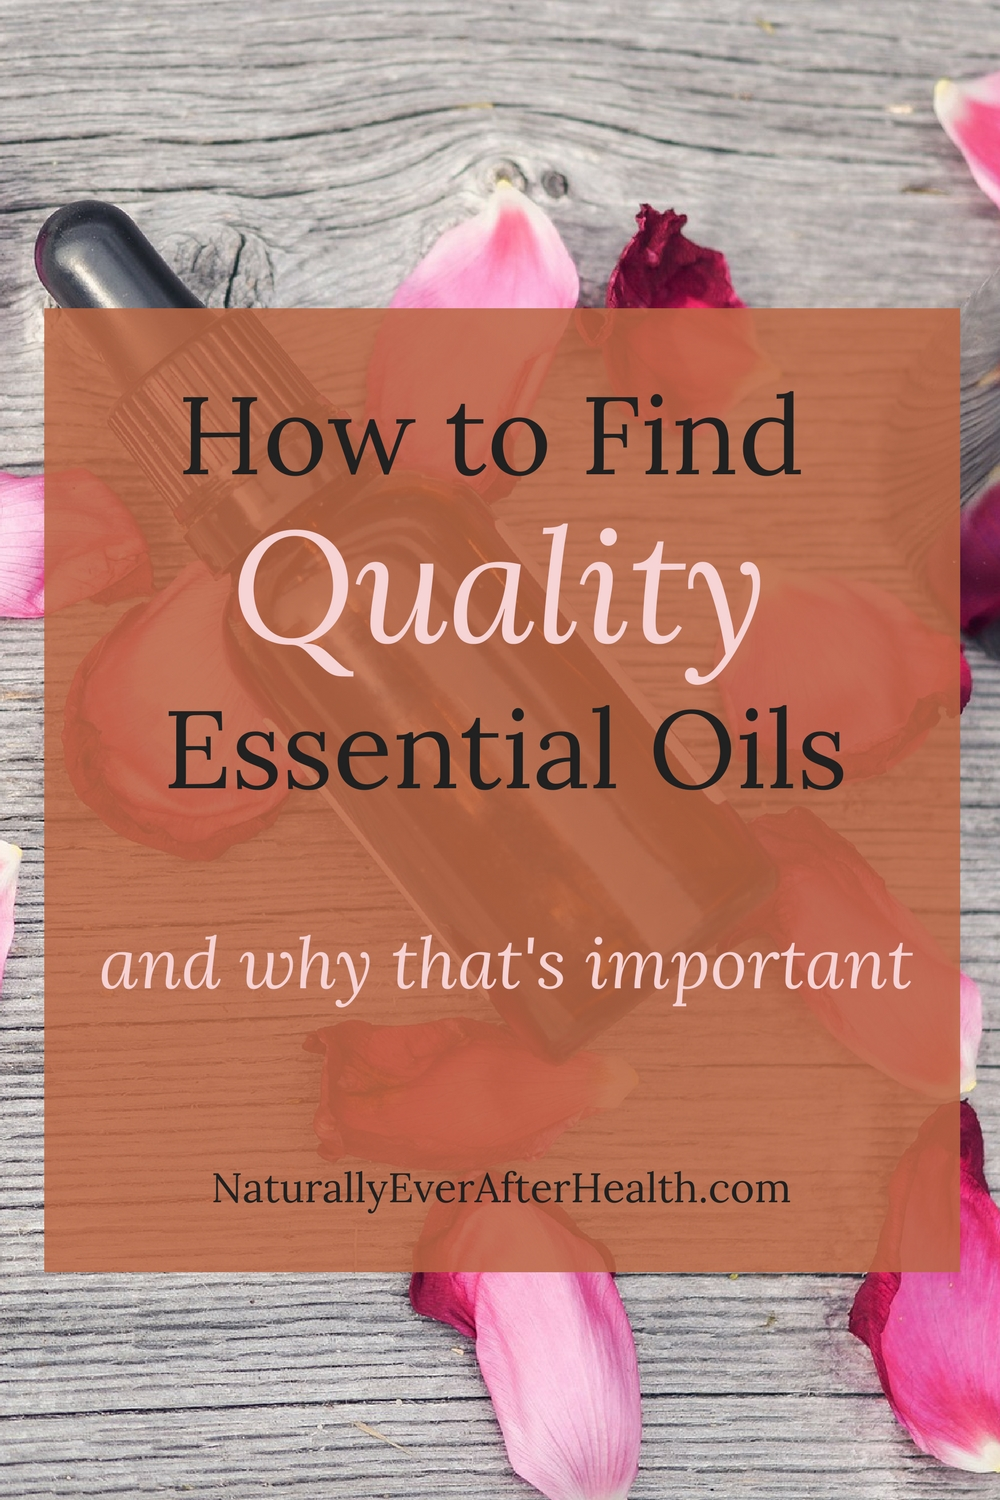 When it comes to the products you use on your body, quality matters. Learn how to find quality essential oils and why quality matters.